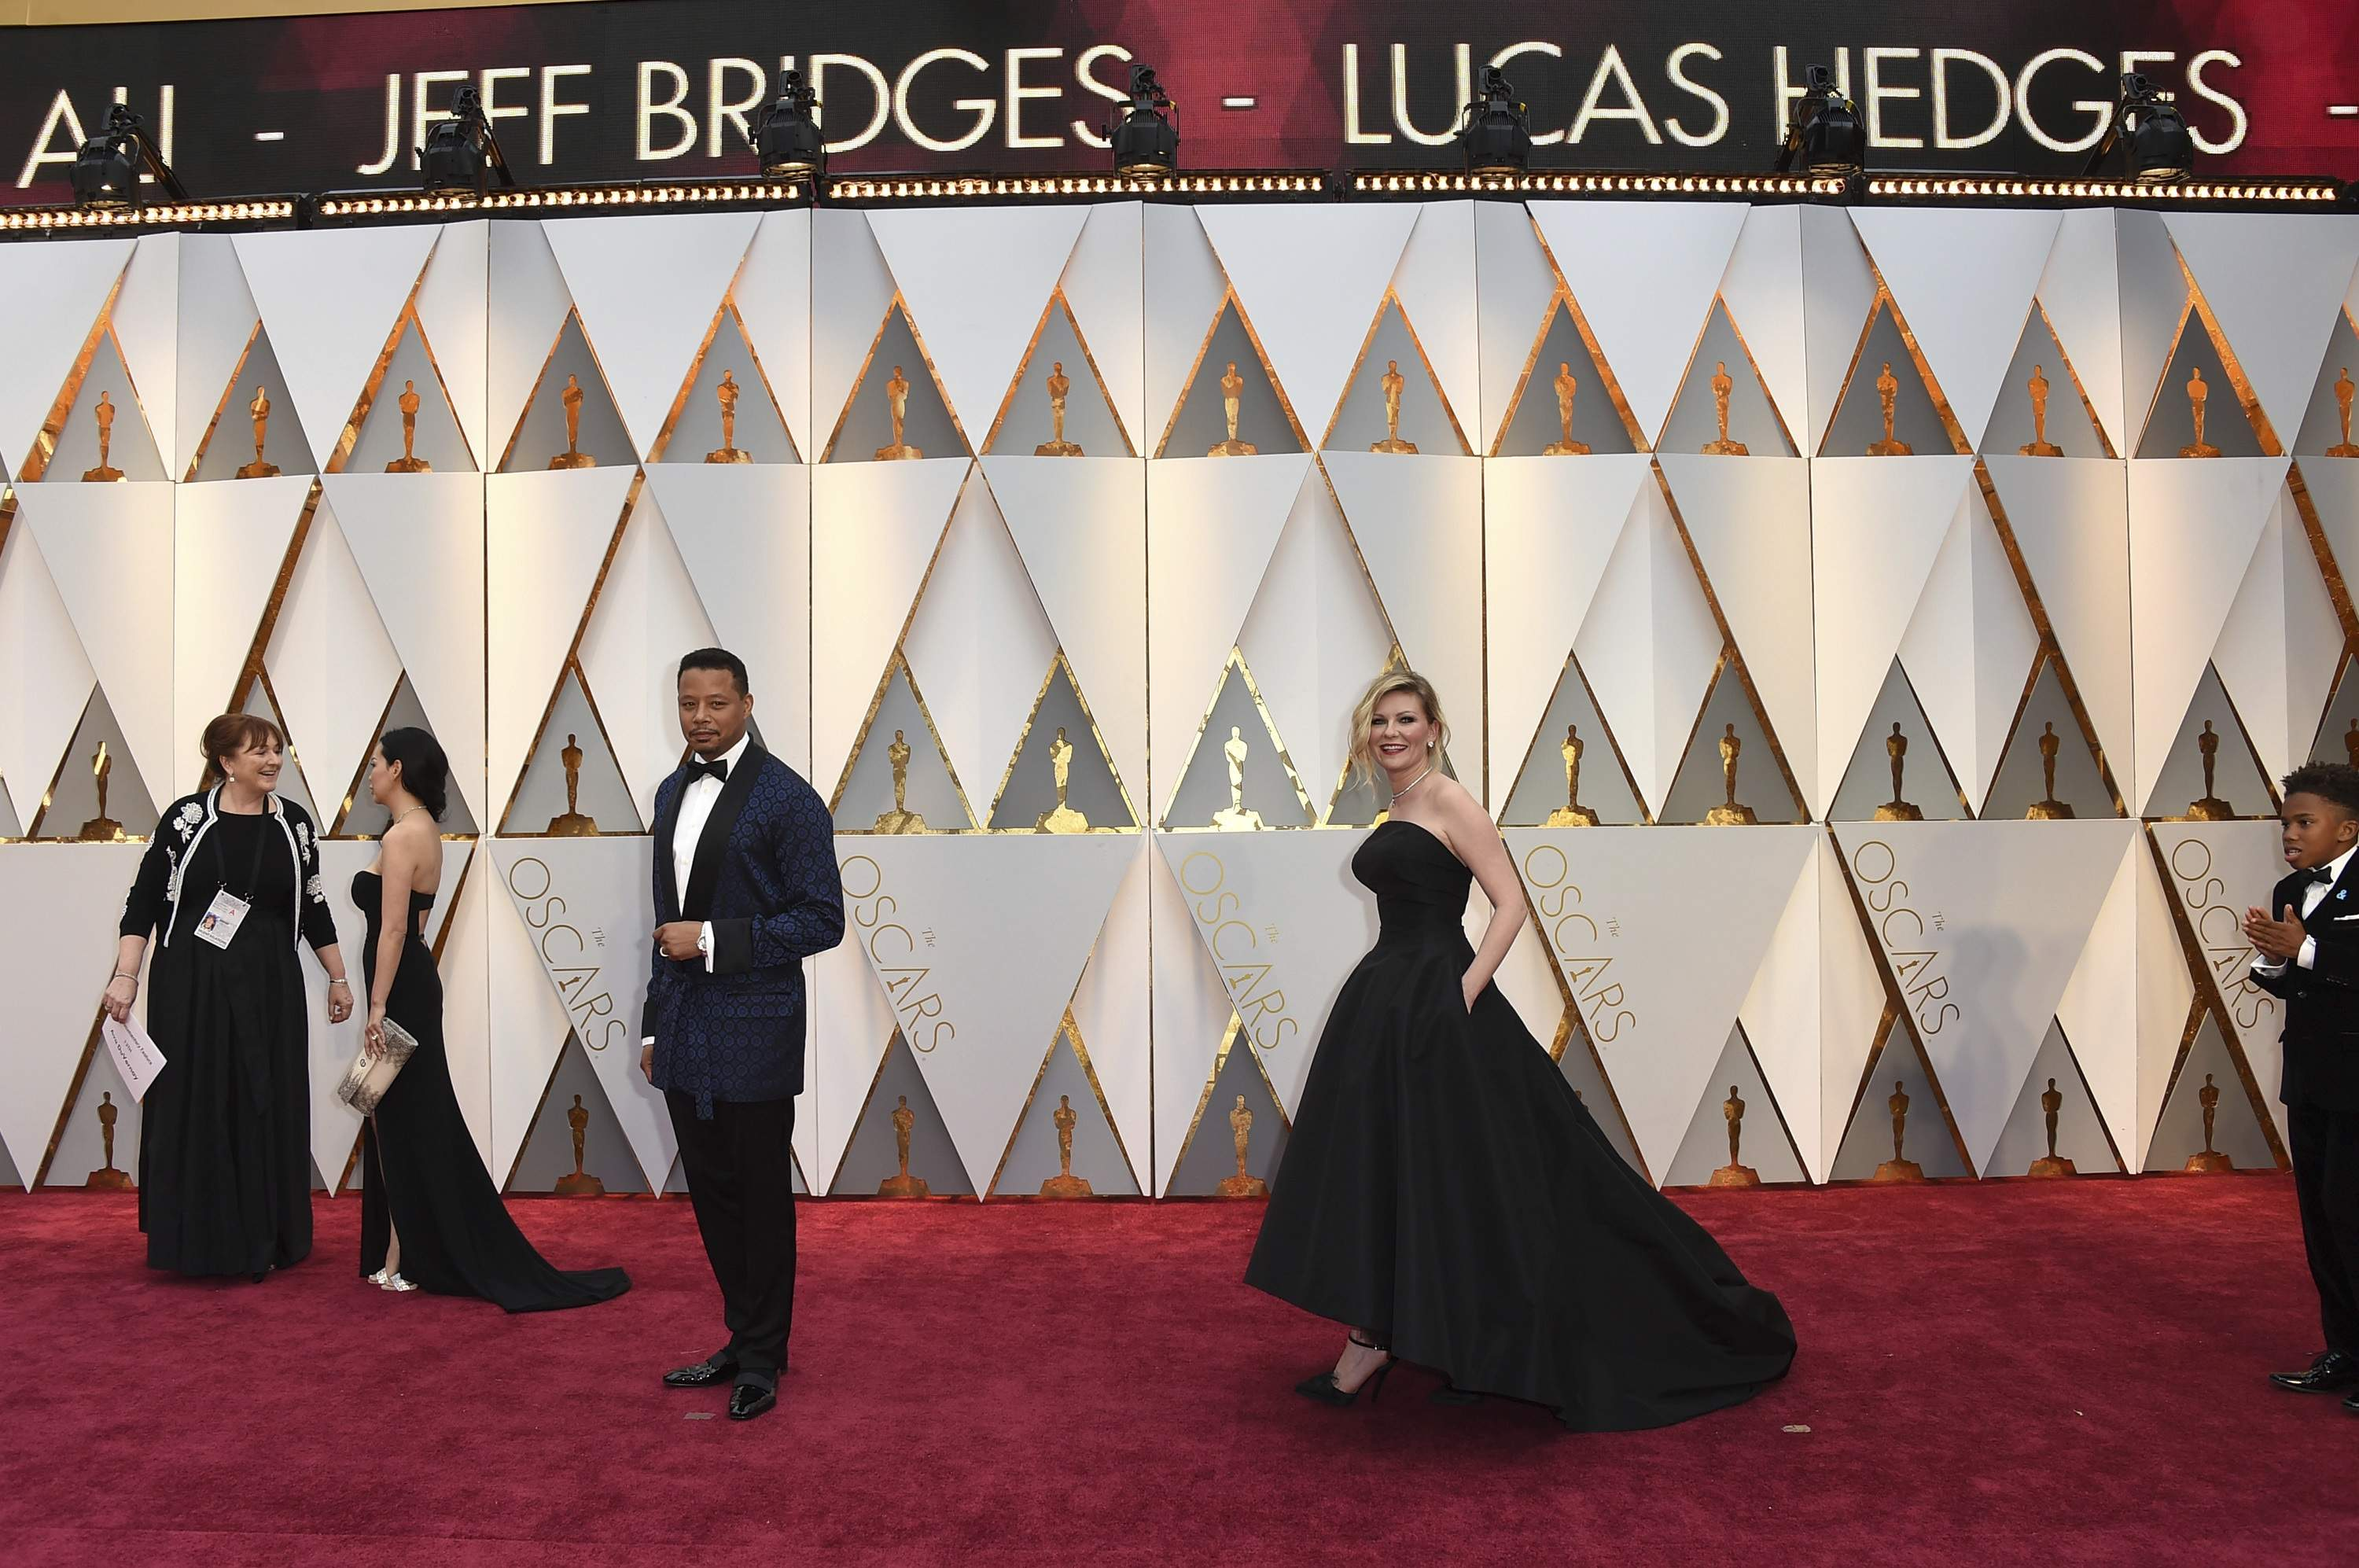 Terrence Howard, center left, and Kirsten Dunst arrive at the Oscars on Sunday, Feb. 26, 2017, at the Dolby Theatre in Los Angeles. THE ASSOCIATED PRESS